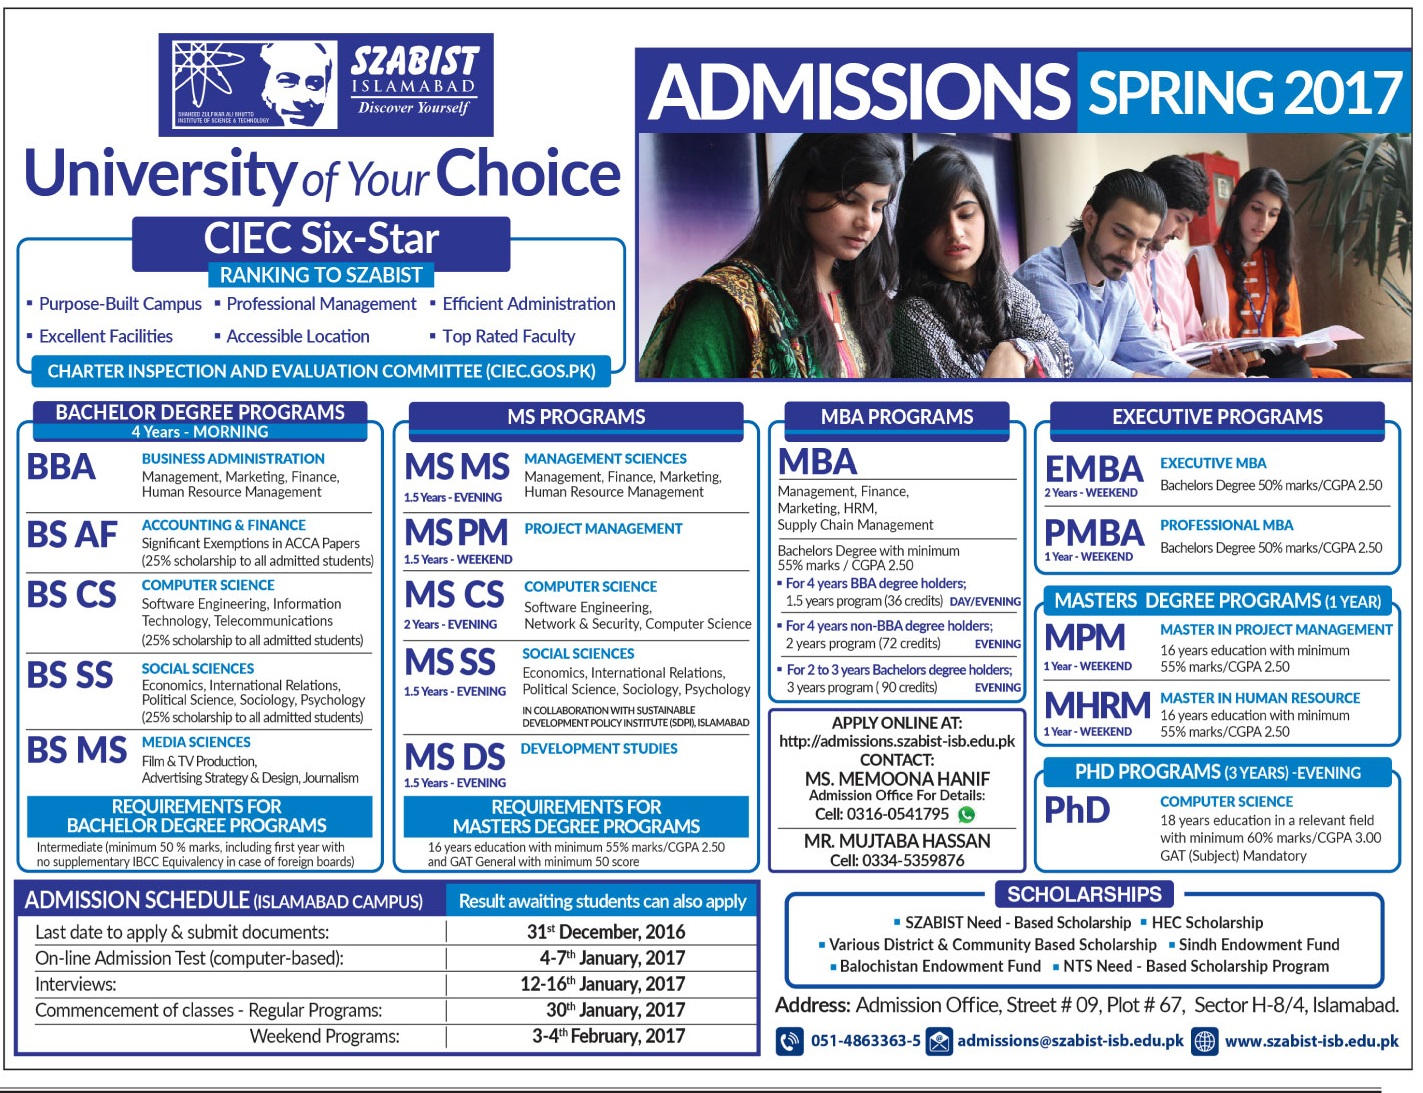 SZABIST Islamabad Spring Admissions 2017 Form, Last Date